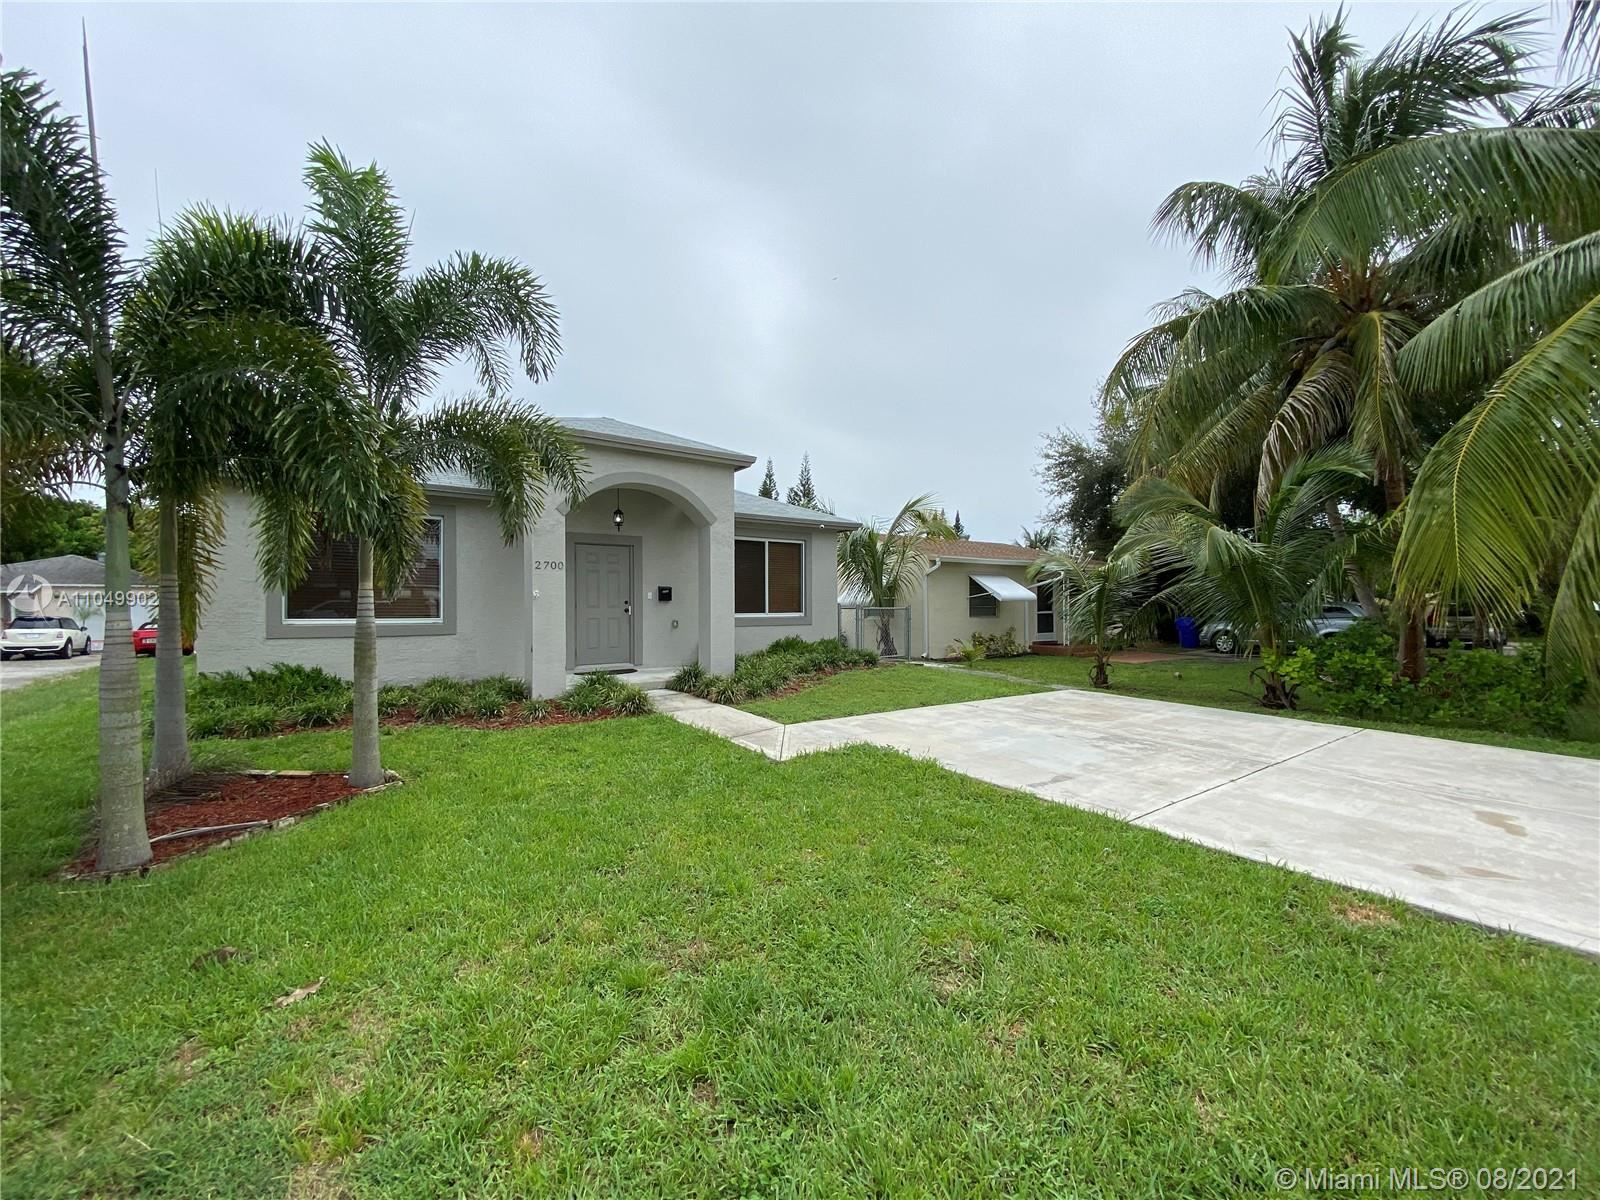 2700 Fillmore St, Hollywood, FL 33020 - #: A11049902